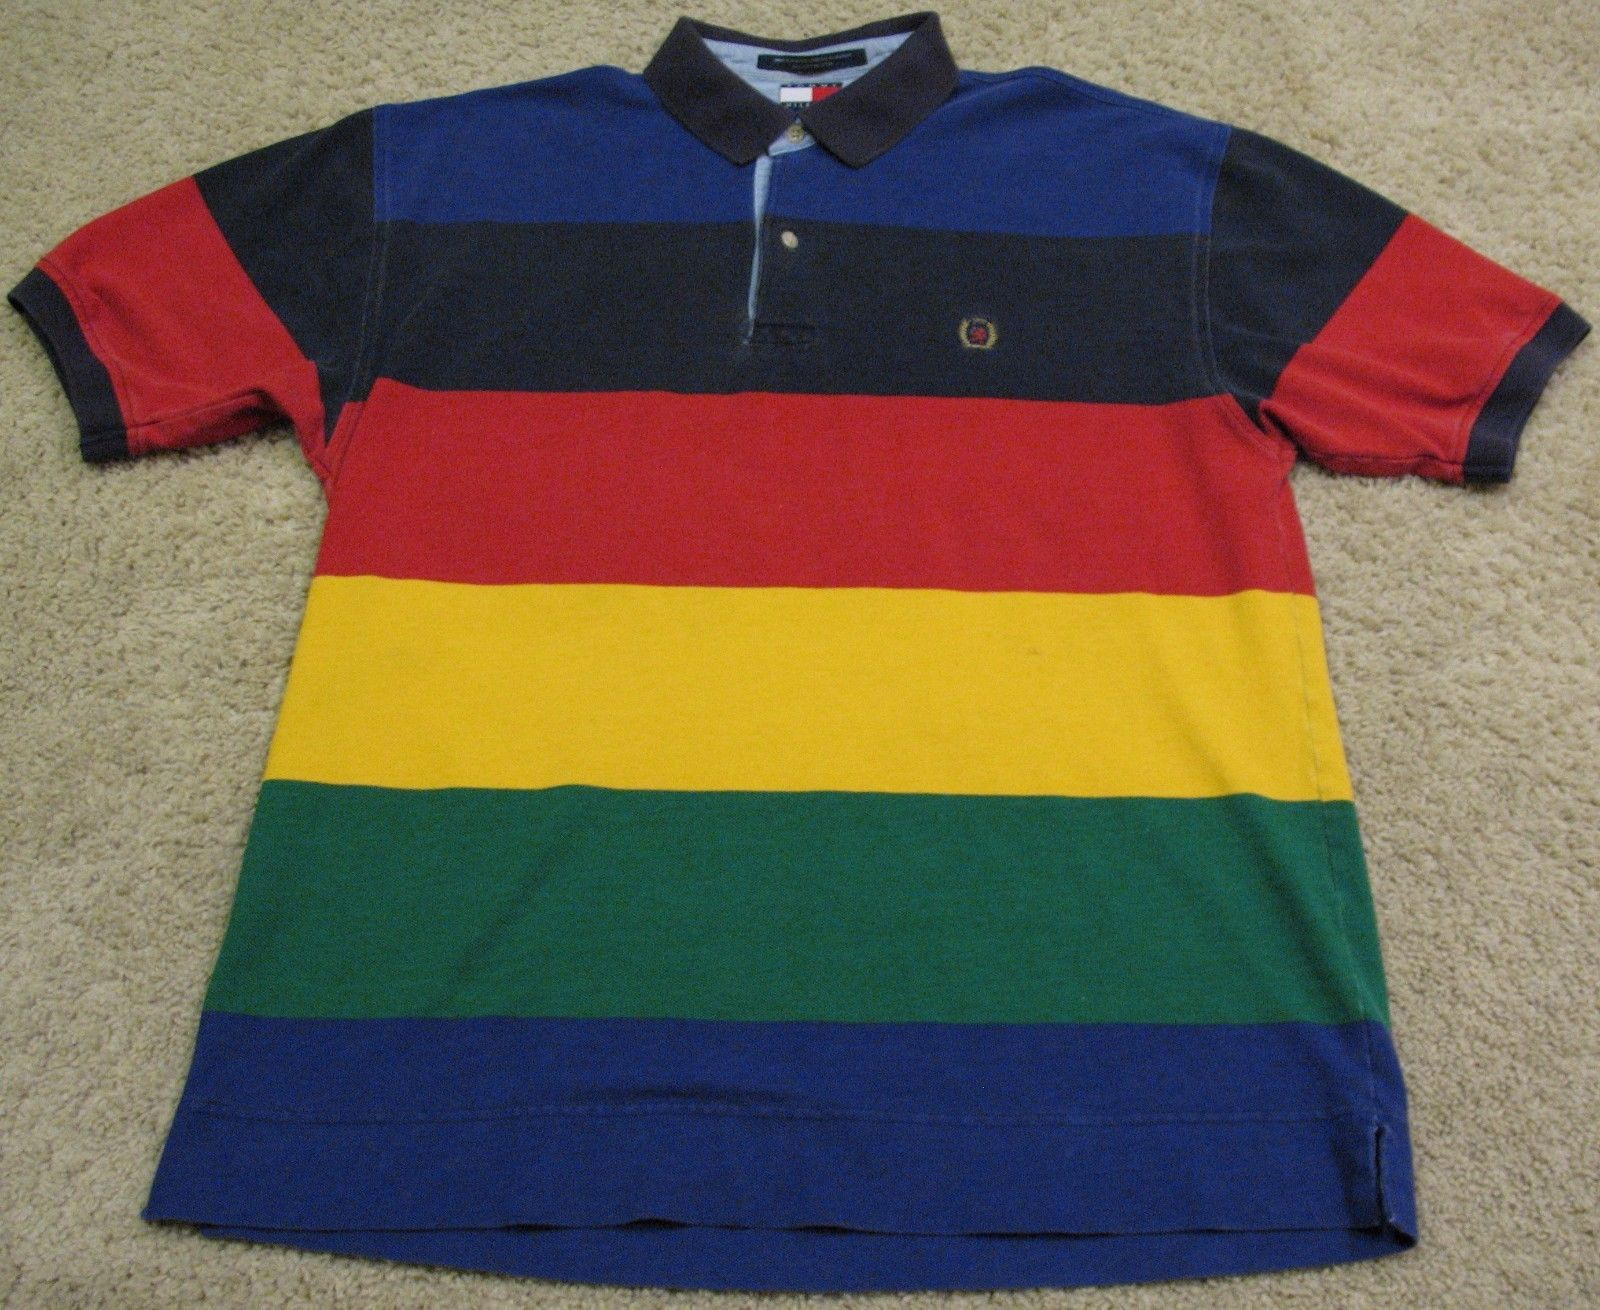 d09c7ded4 Vintage 90s Tommy Hilfiger Rainbow Polo Shirt Blue Red Yellow Green ...